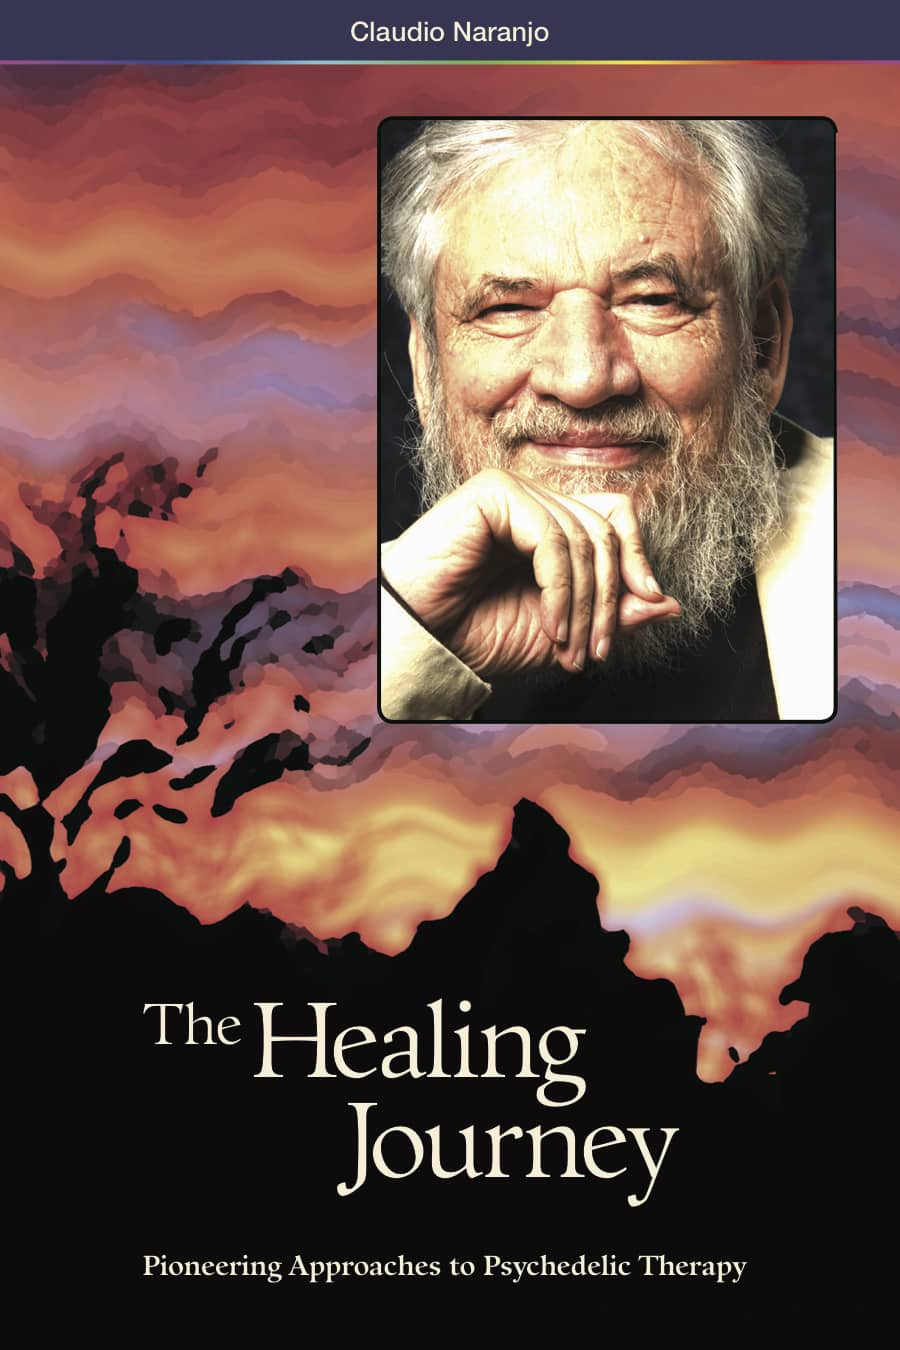 The Healing Journey: Pioneering Approaches to Psychedelic Therapy (2nd Edition)